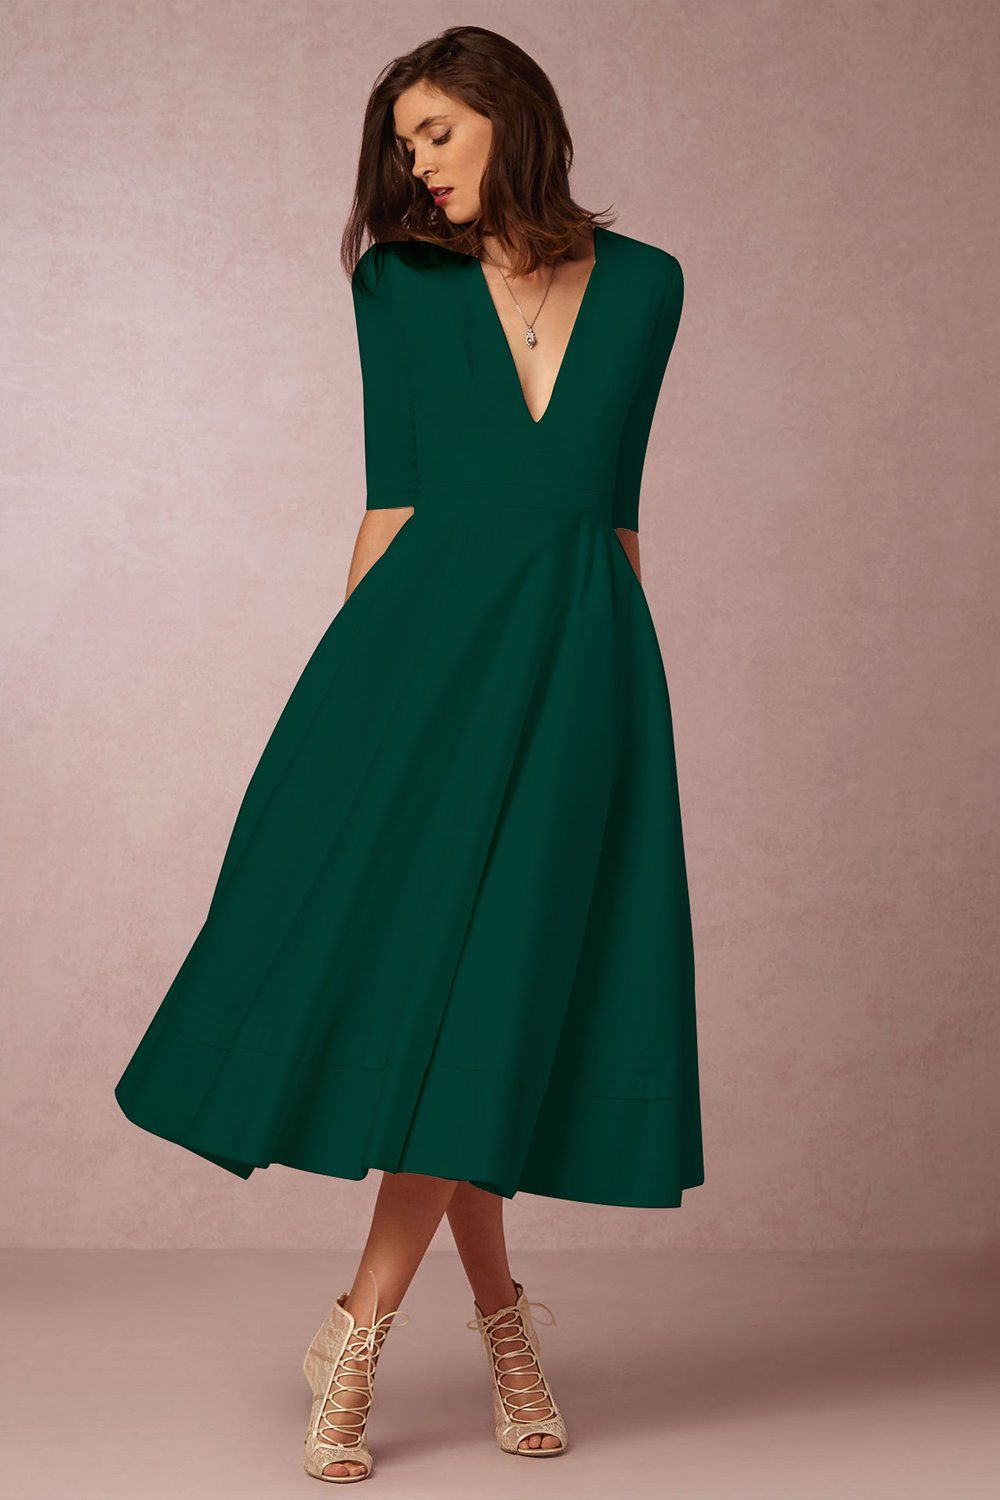 A| Chicloth A-LINE V NECK HALF SLEEVE MIDI PARTY DRESS